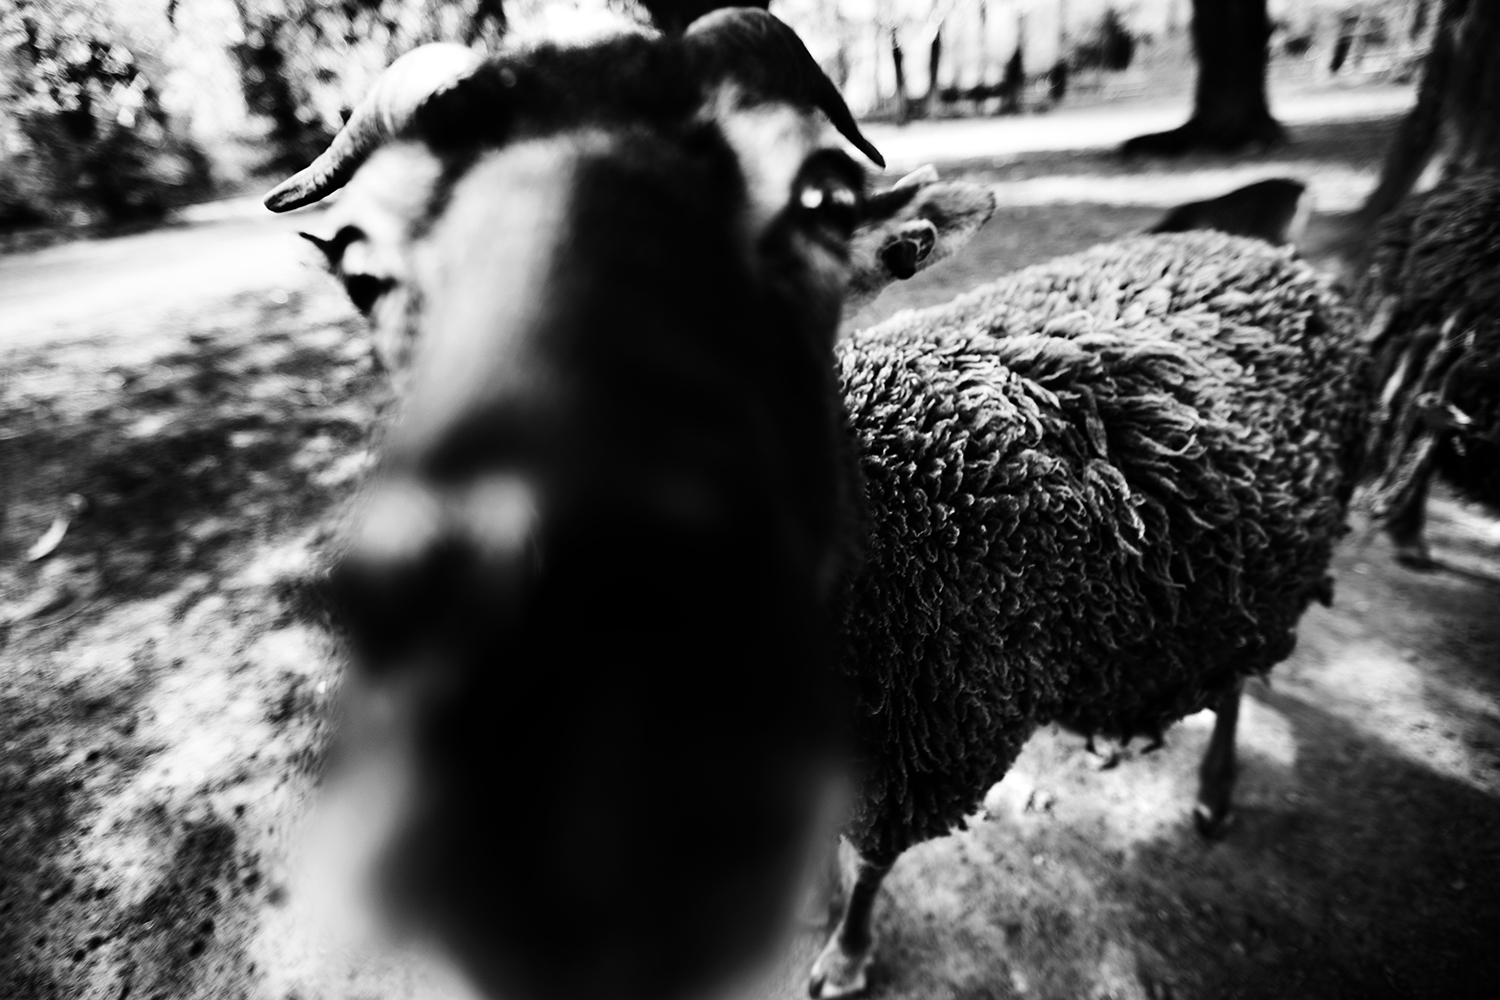 Animals by Laurent Orseau #48